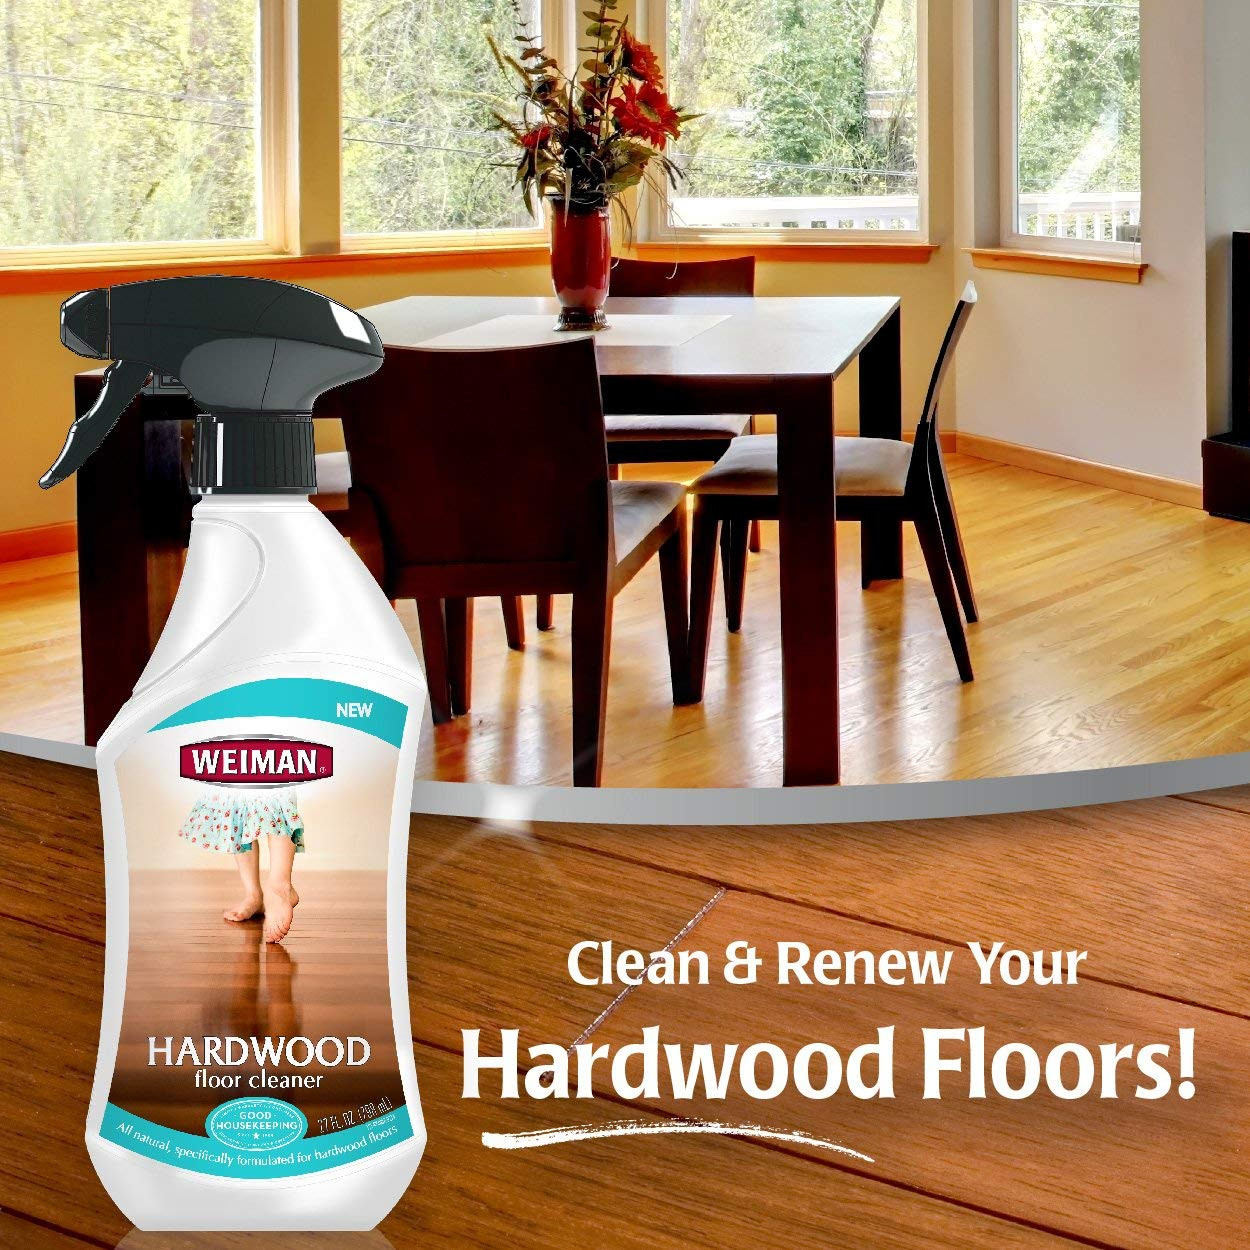 what is the best steam cleaner for hardwood floors of amazon com weiman hardwood floor cleaner surface safe no harsh throughout amazon com weiman hardwood floor cleaner surface safe no harsh scent safe for use around kids and pets residue free 27 oz trigger home kitchen